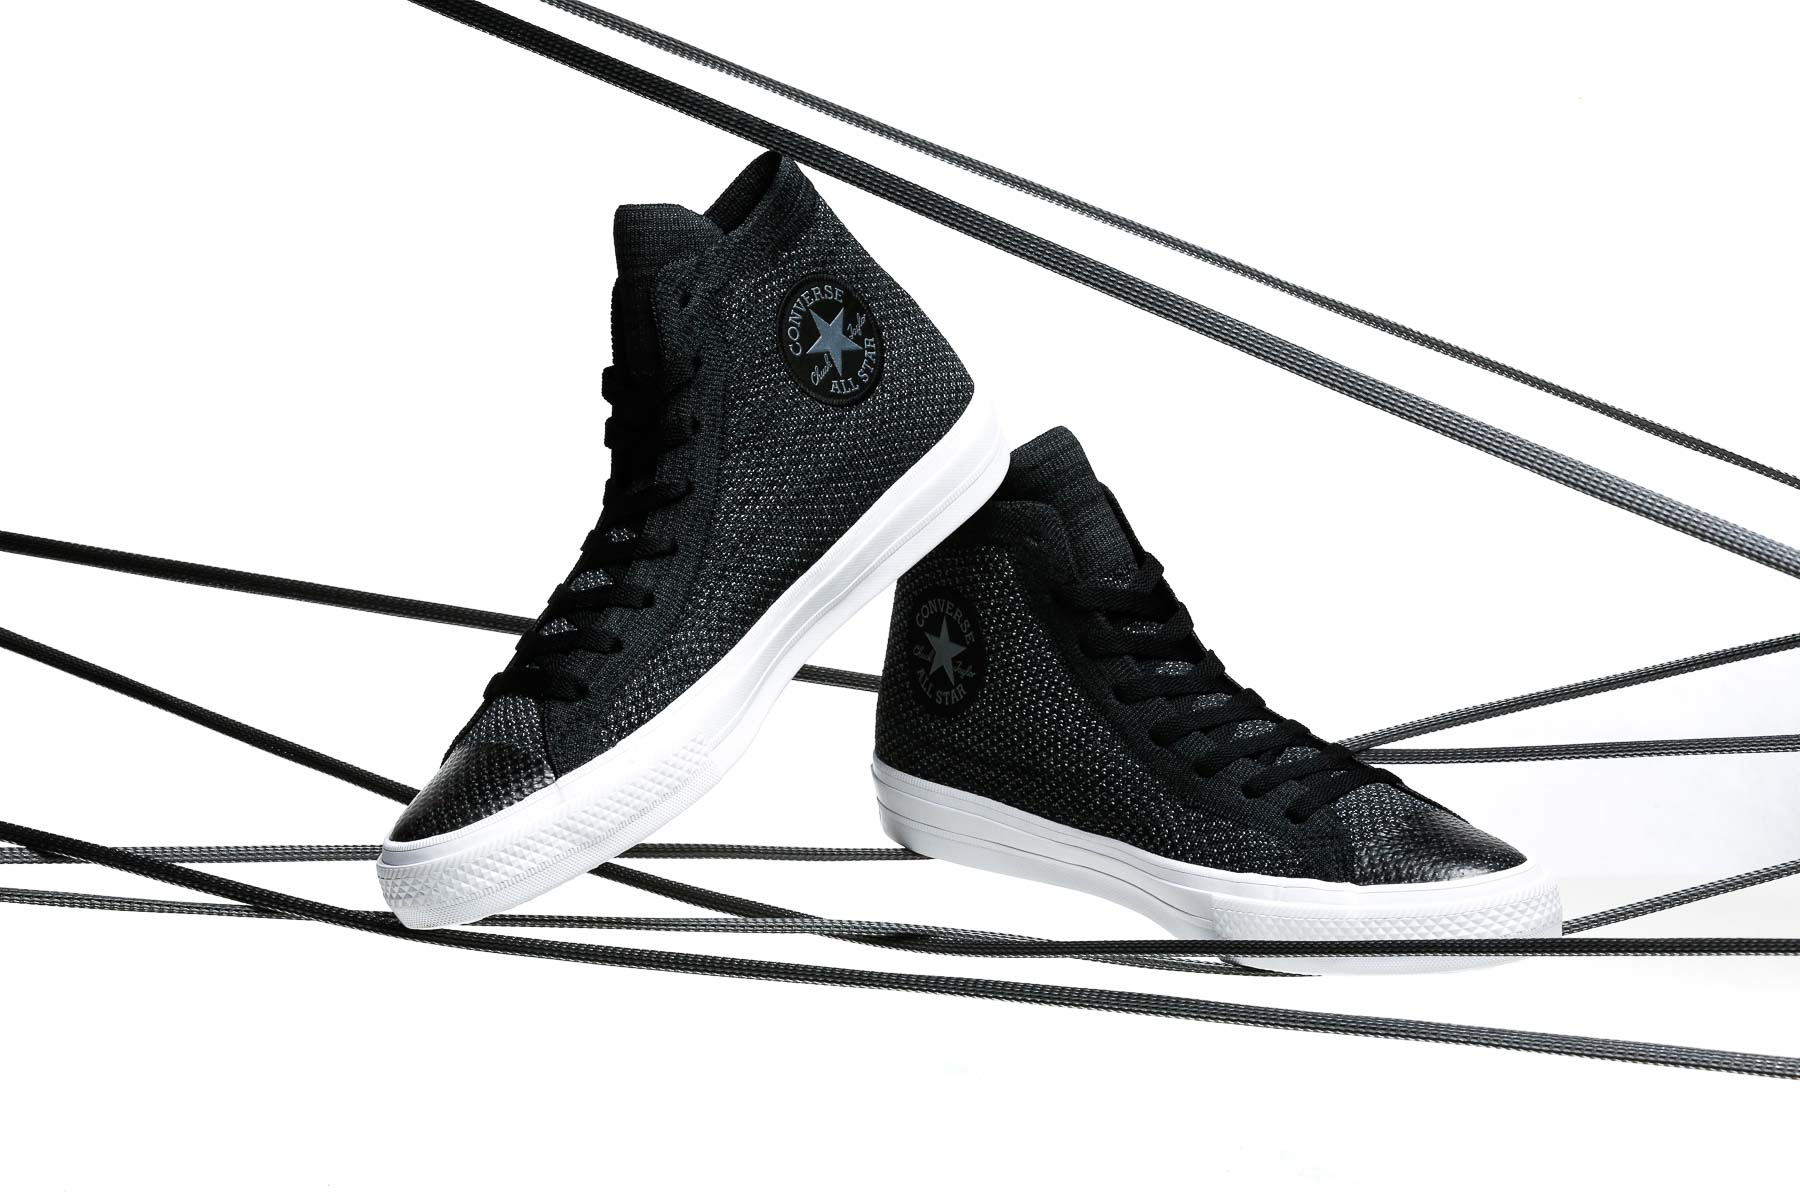 converse-chuck taylor all star x nike flyknit-6